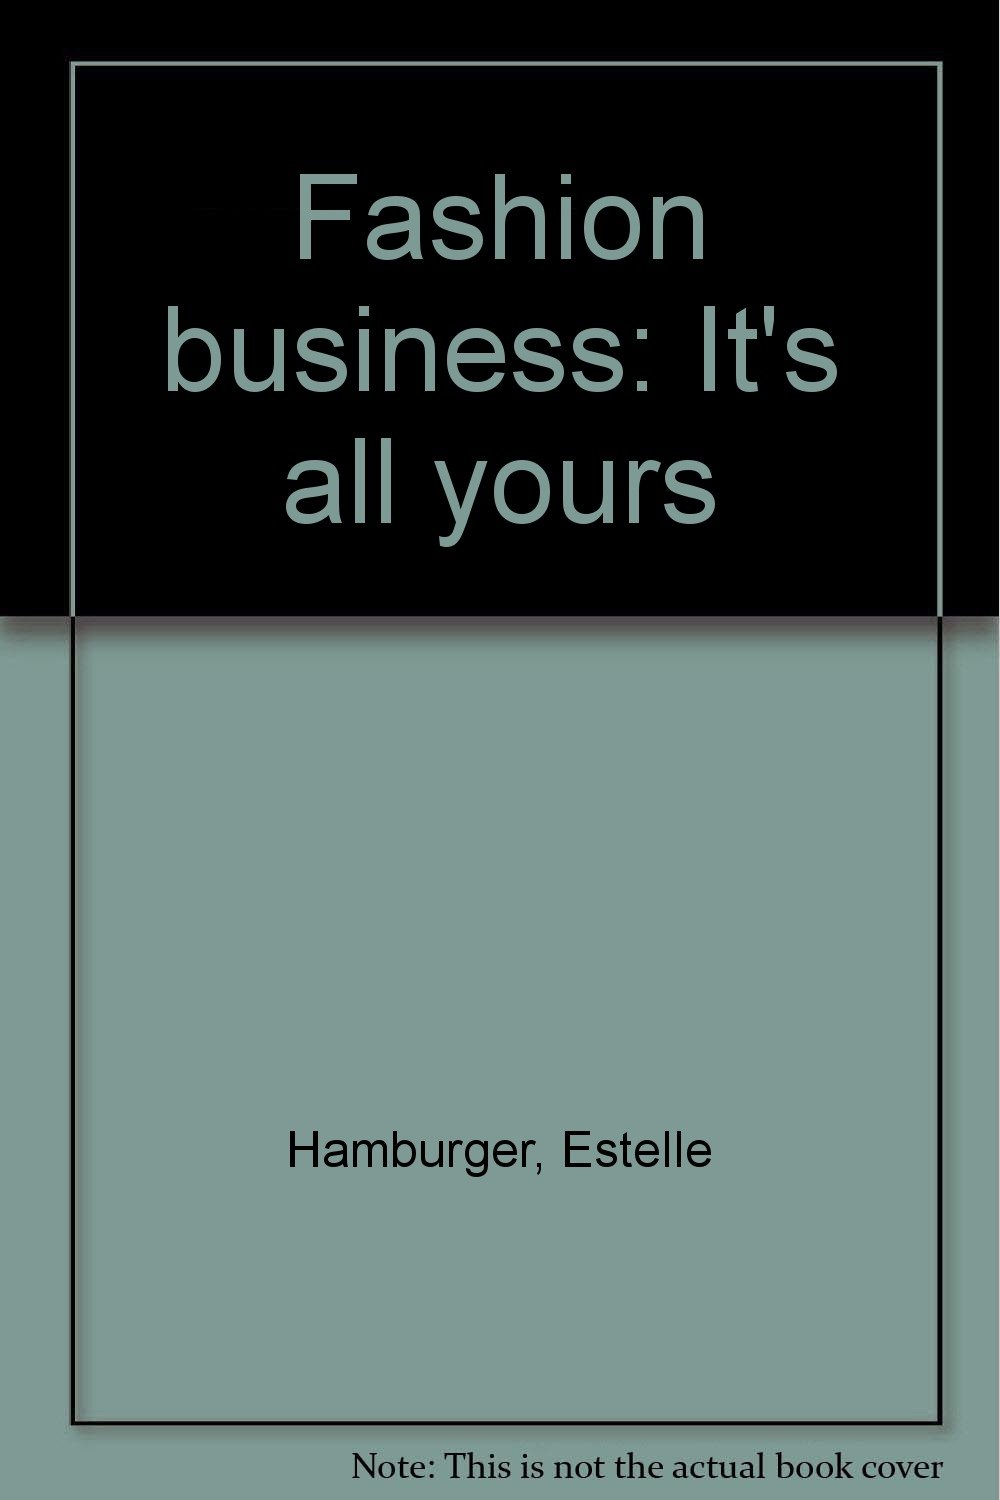 Fashion business: It's all yours